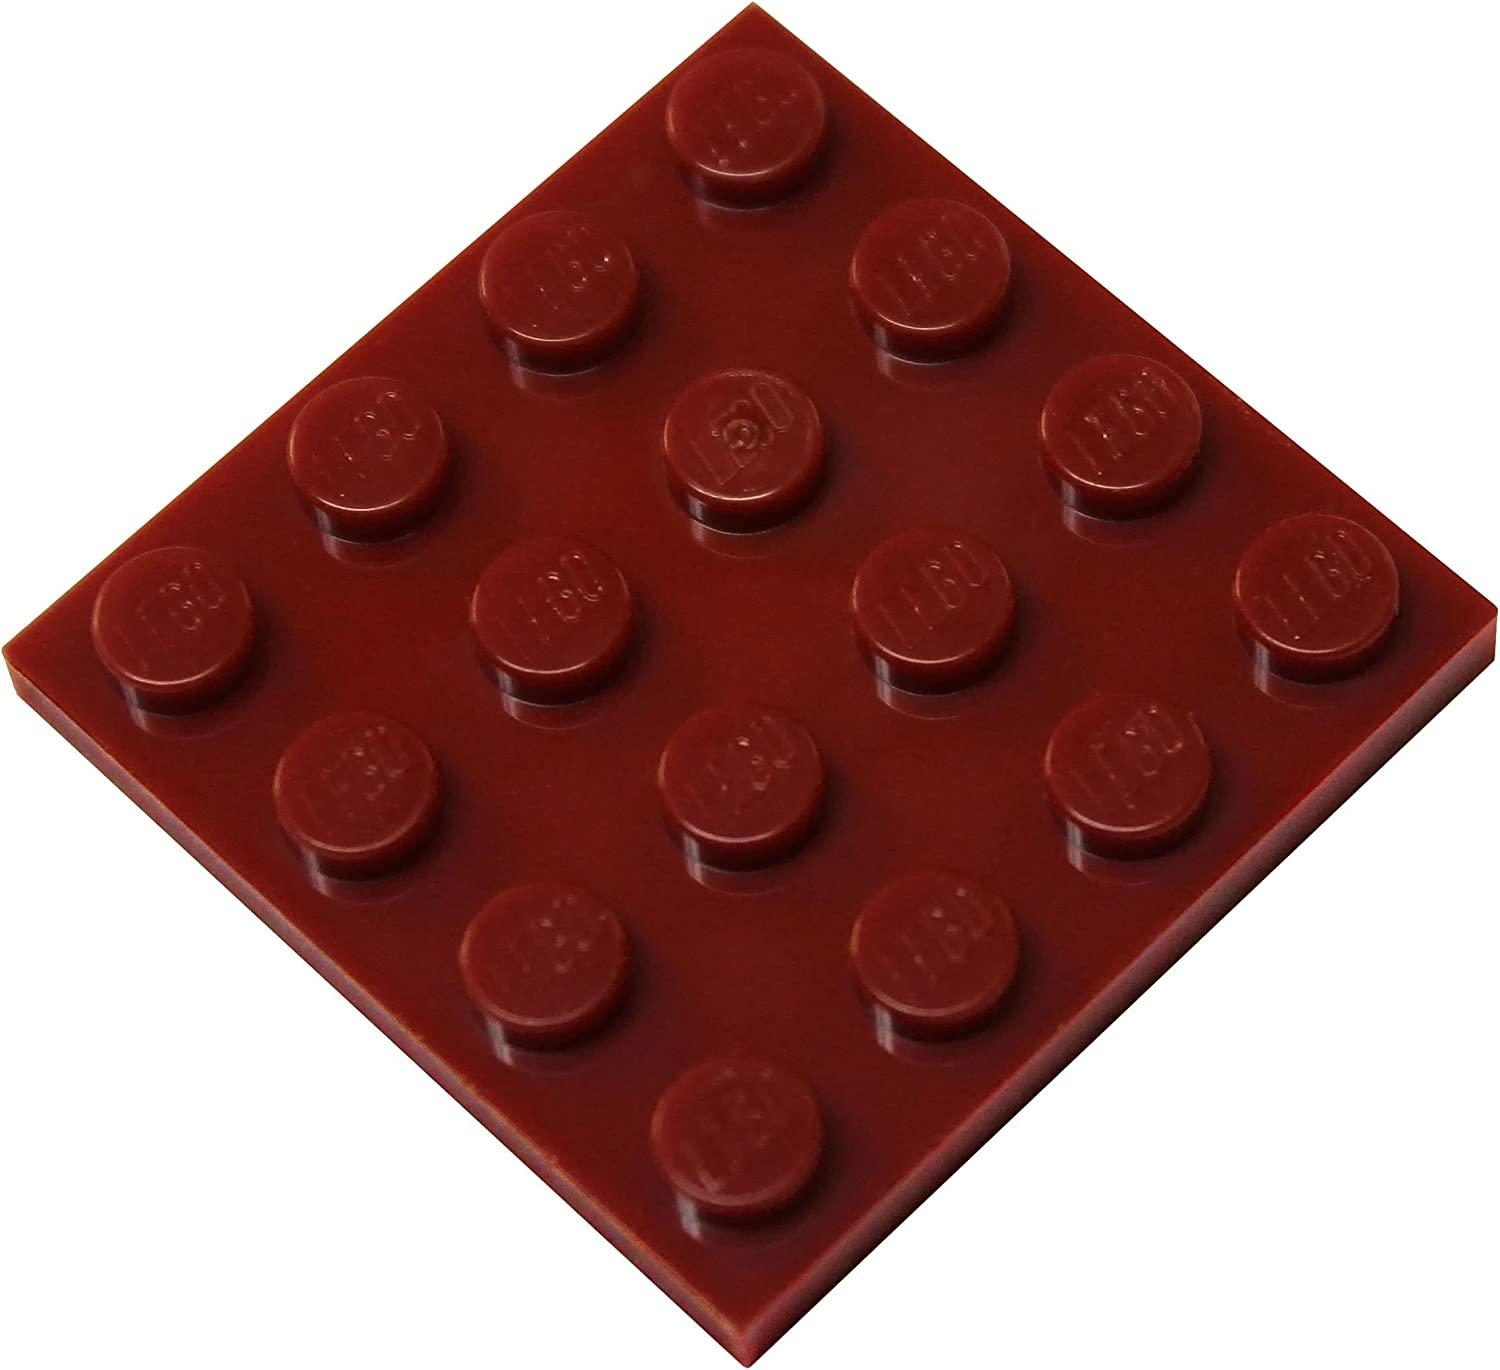 LEGO Parts and Pieces: Dark Red 4x4 Plate x100